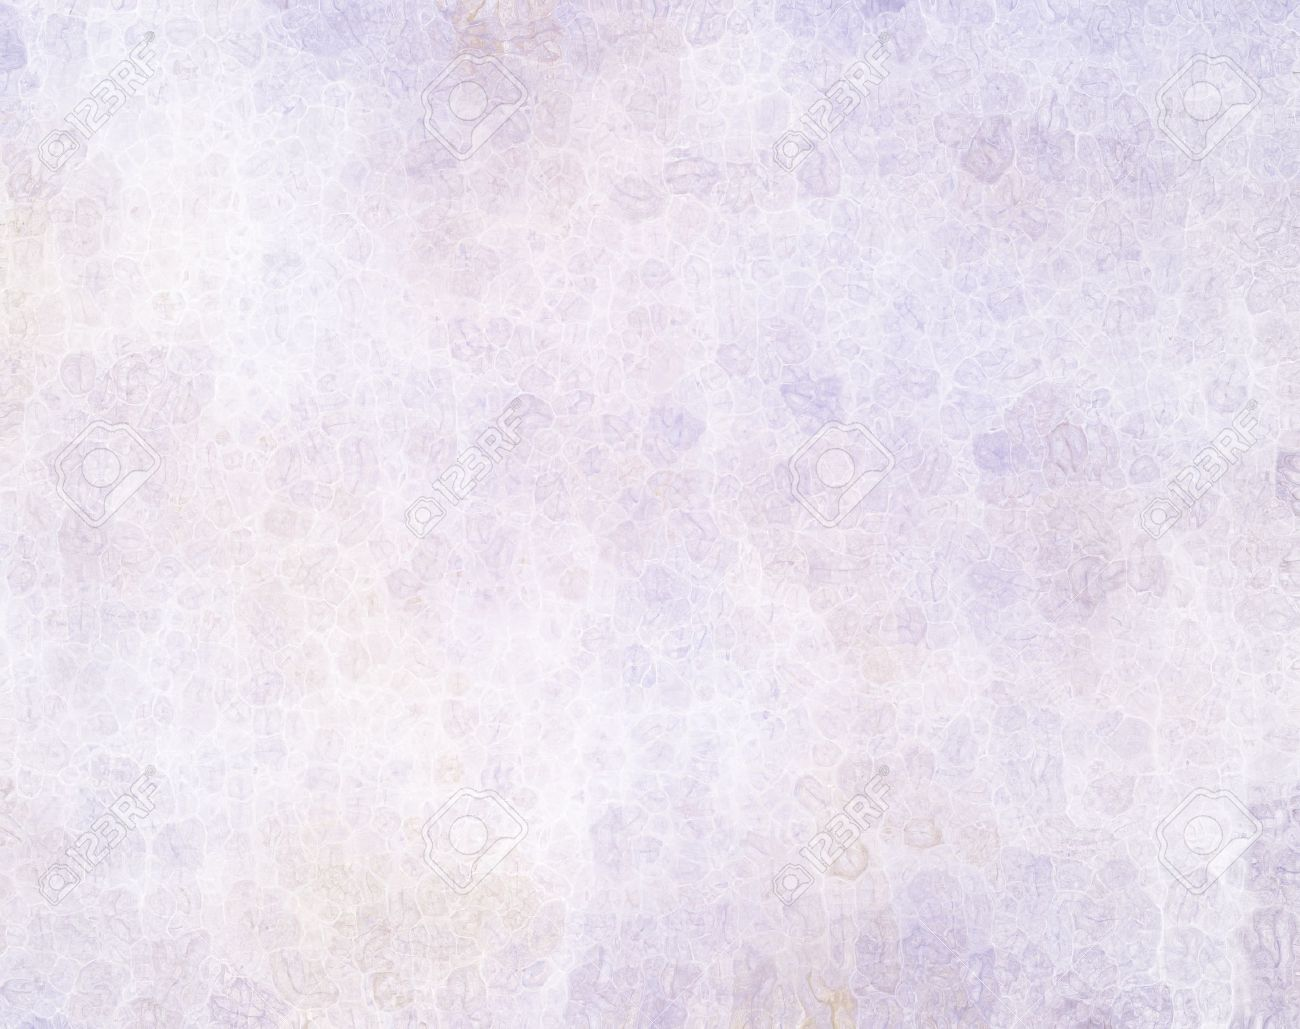 Download Wallpaper Grey Watercolor - 19577596-light-blue-background-or-white-background-with-soft-faded-vintage-grunge-background-texture-parchmen  Picture_804316.jpg